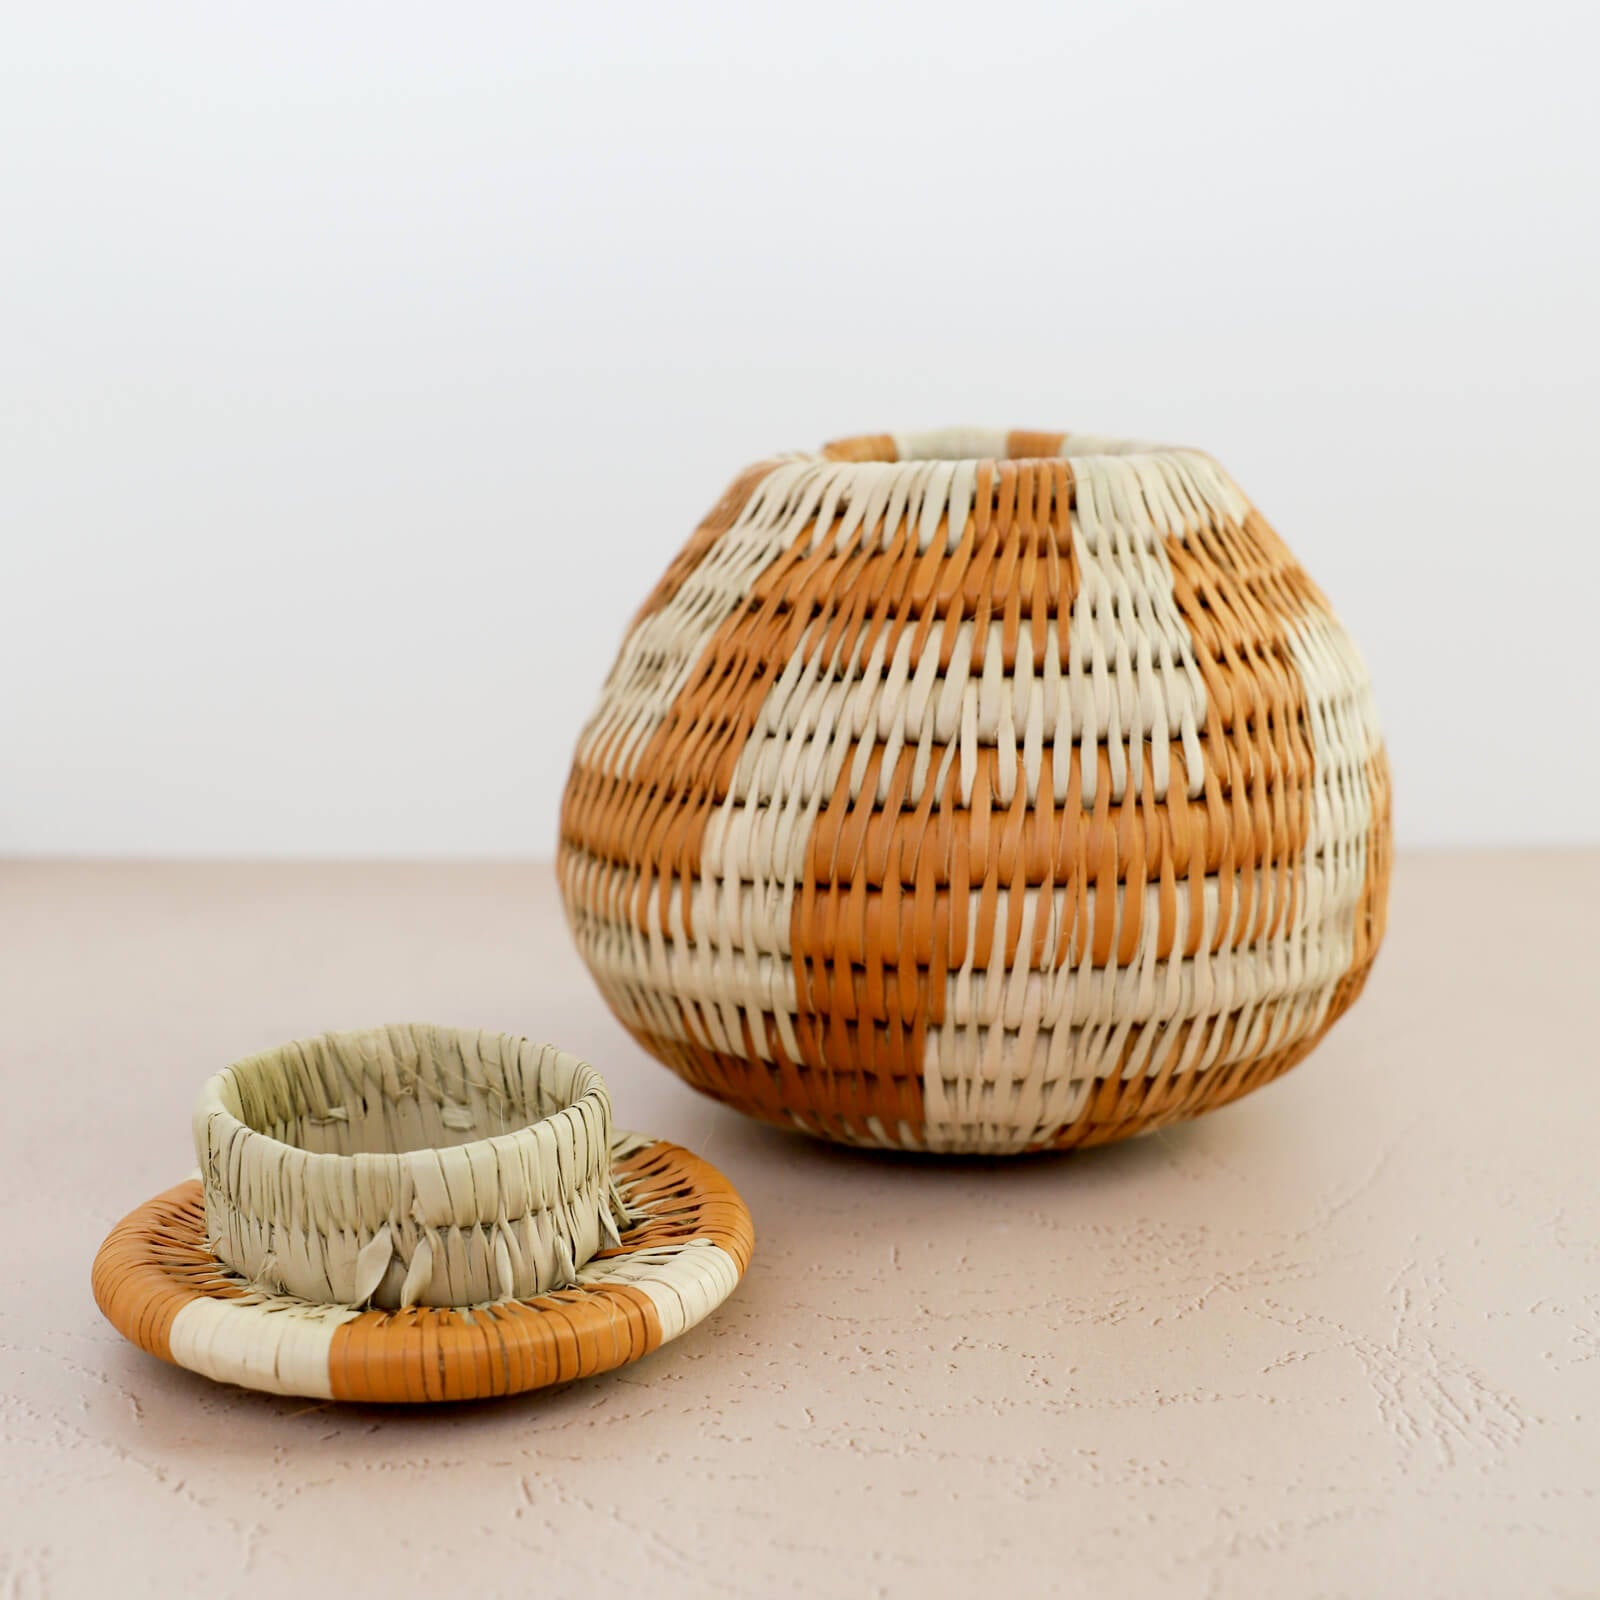 Vintage Handwoven Bayei Lidded Basket - Medium, 2